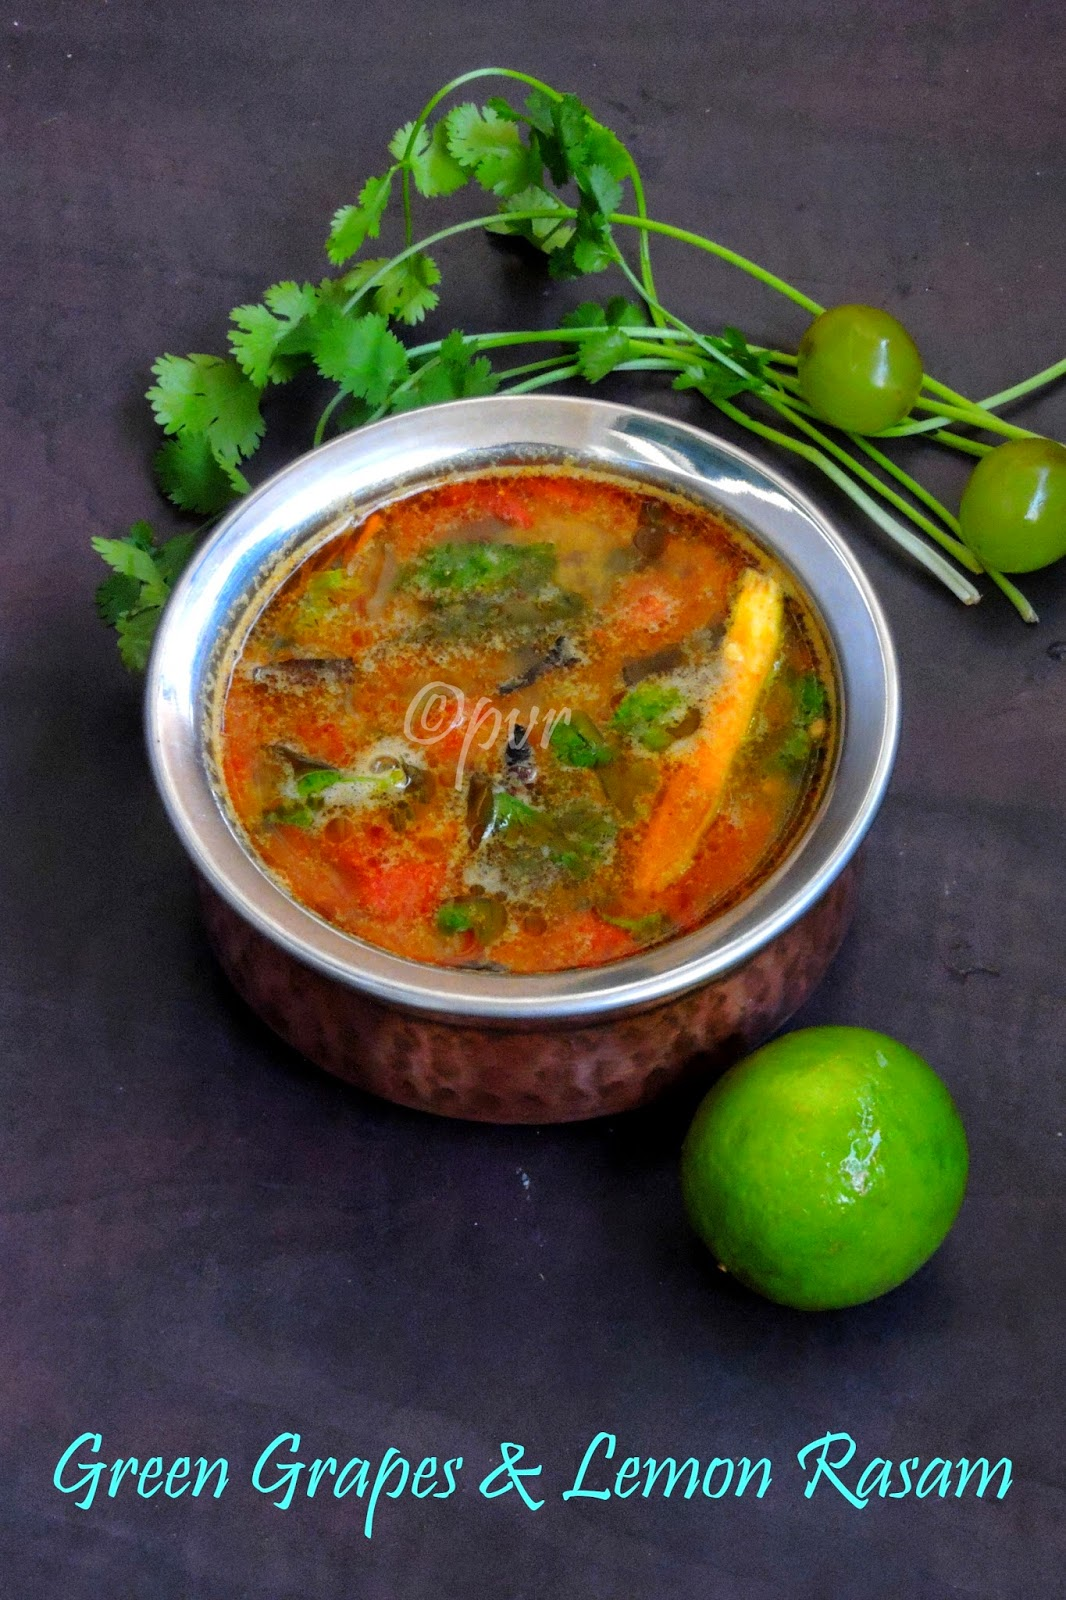 Greengrapes, lemon rasam, Vegan Greengrapes rasam